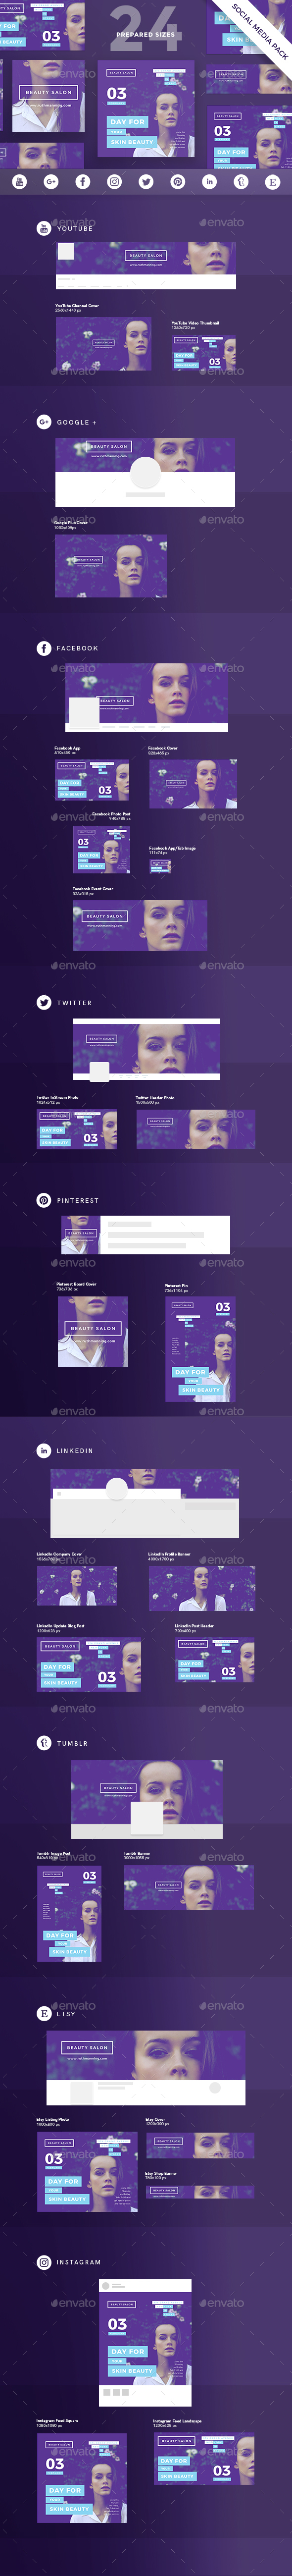 Beauty Salon Social Media Pack - Miscellaneous Social Media